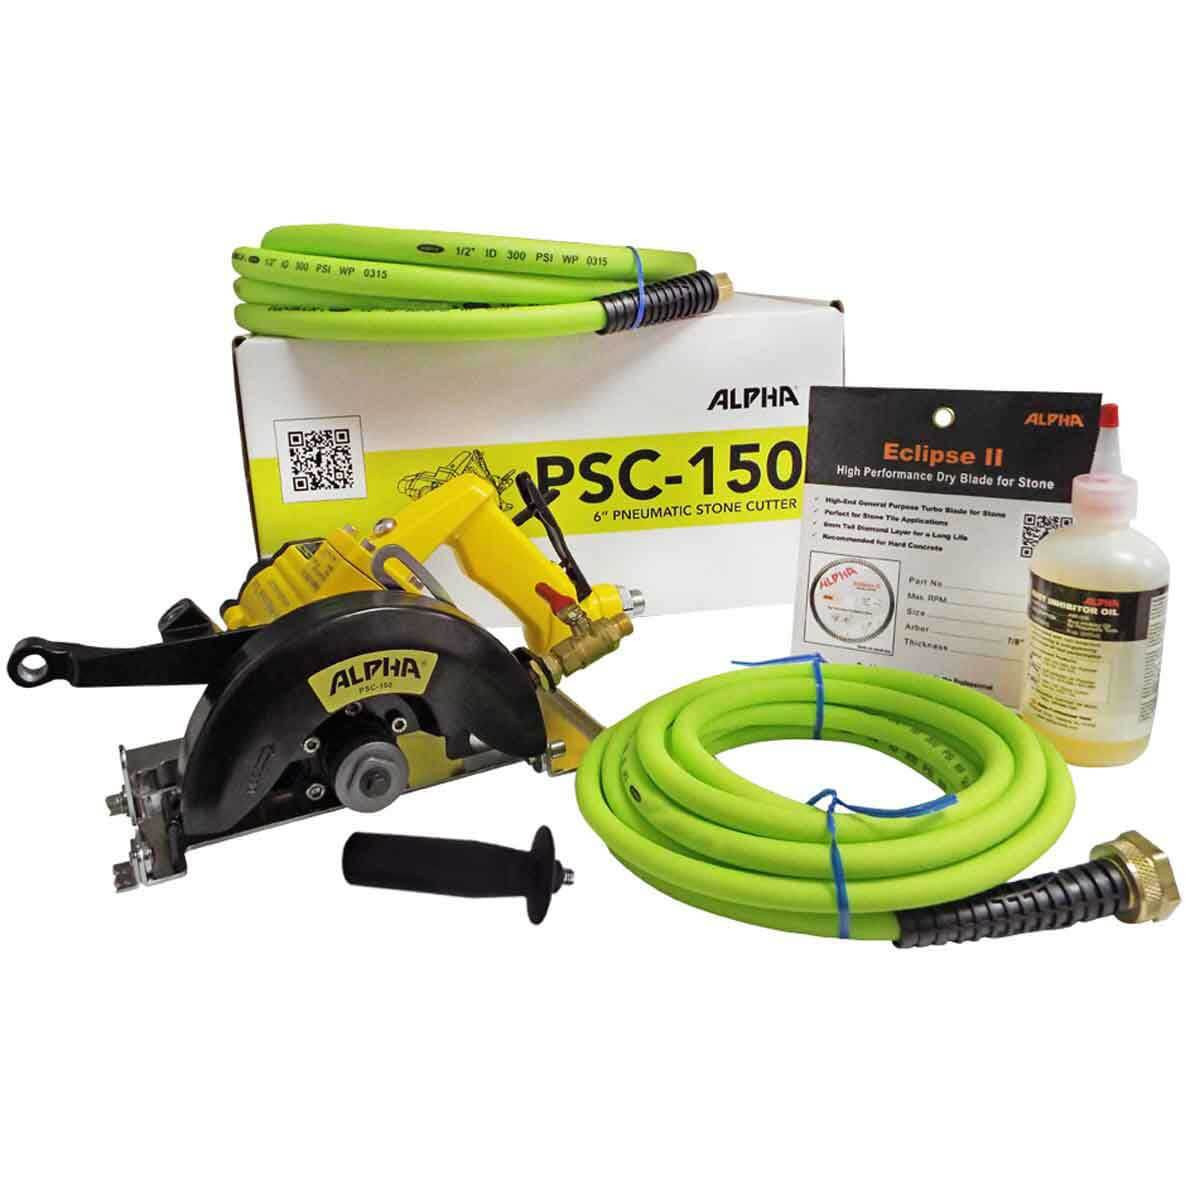 Alpha PSC-150 Pneumatic Stone Cutter components